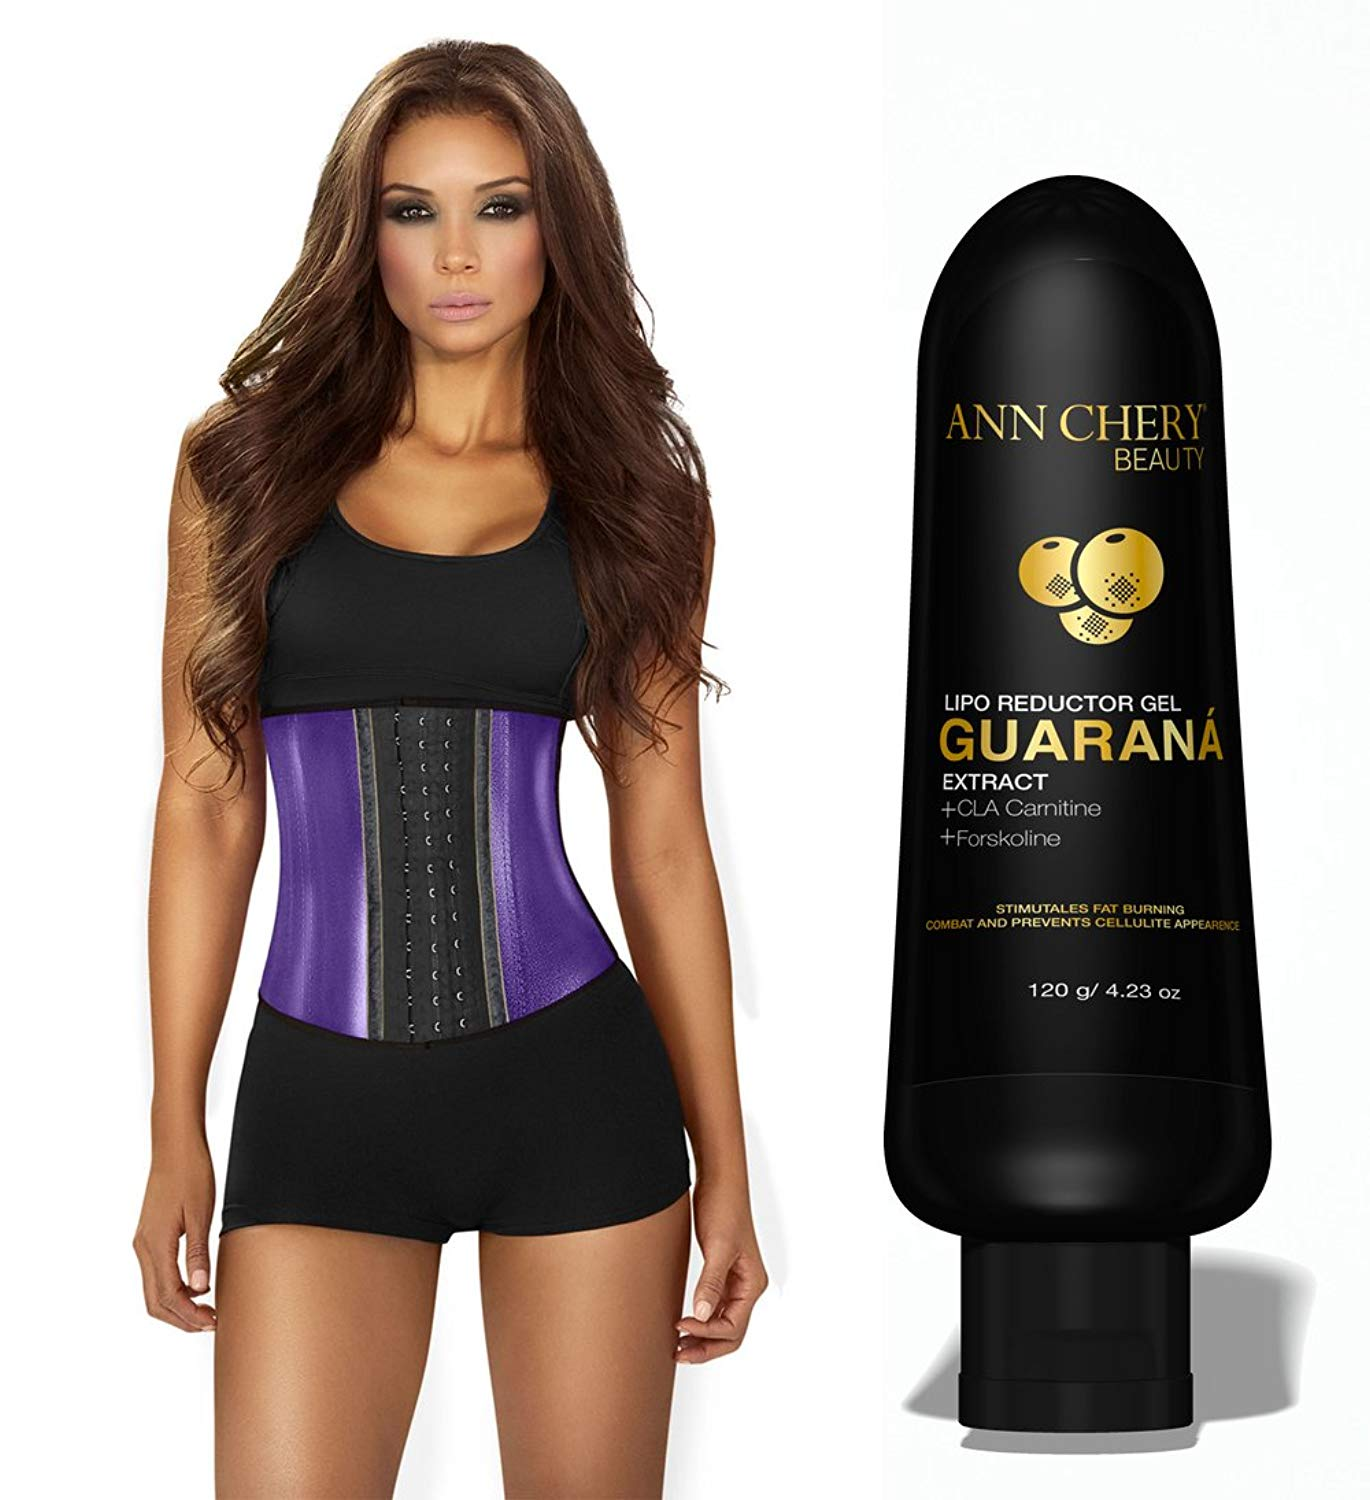 f22c55e098 Ann Chery 2045 Metallic Edition 3 Hooks Women Latex with Guarana Slimming  Gel. Waist Trainer